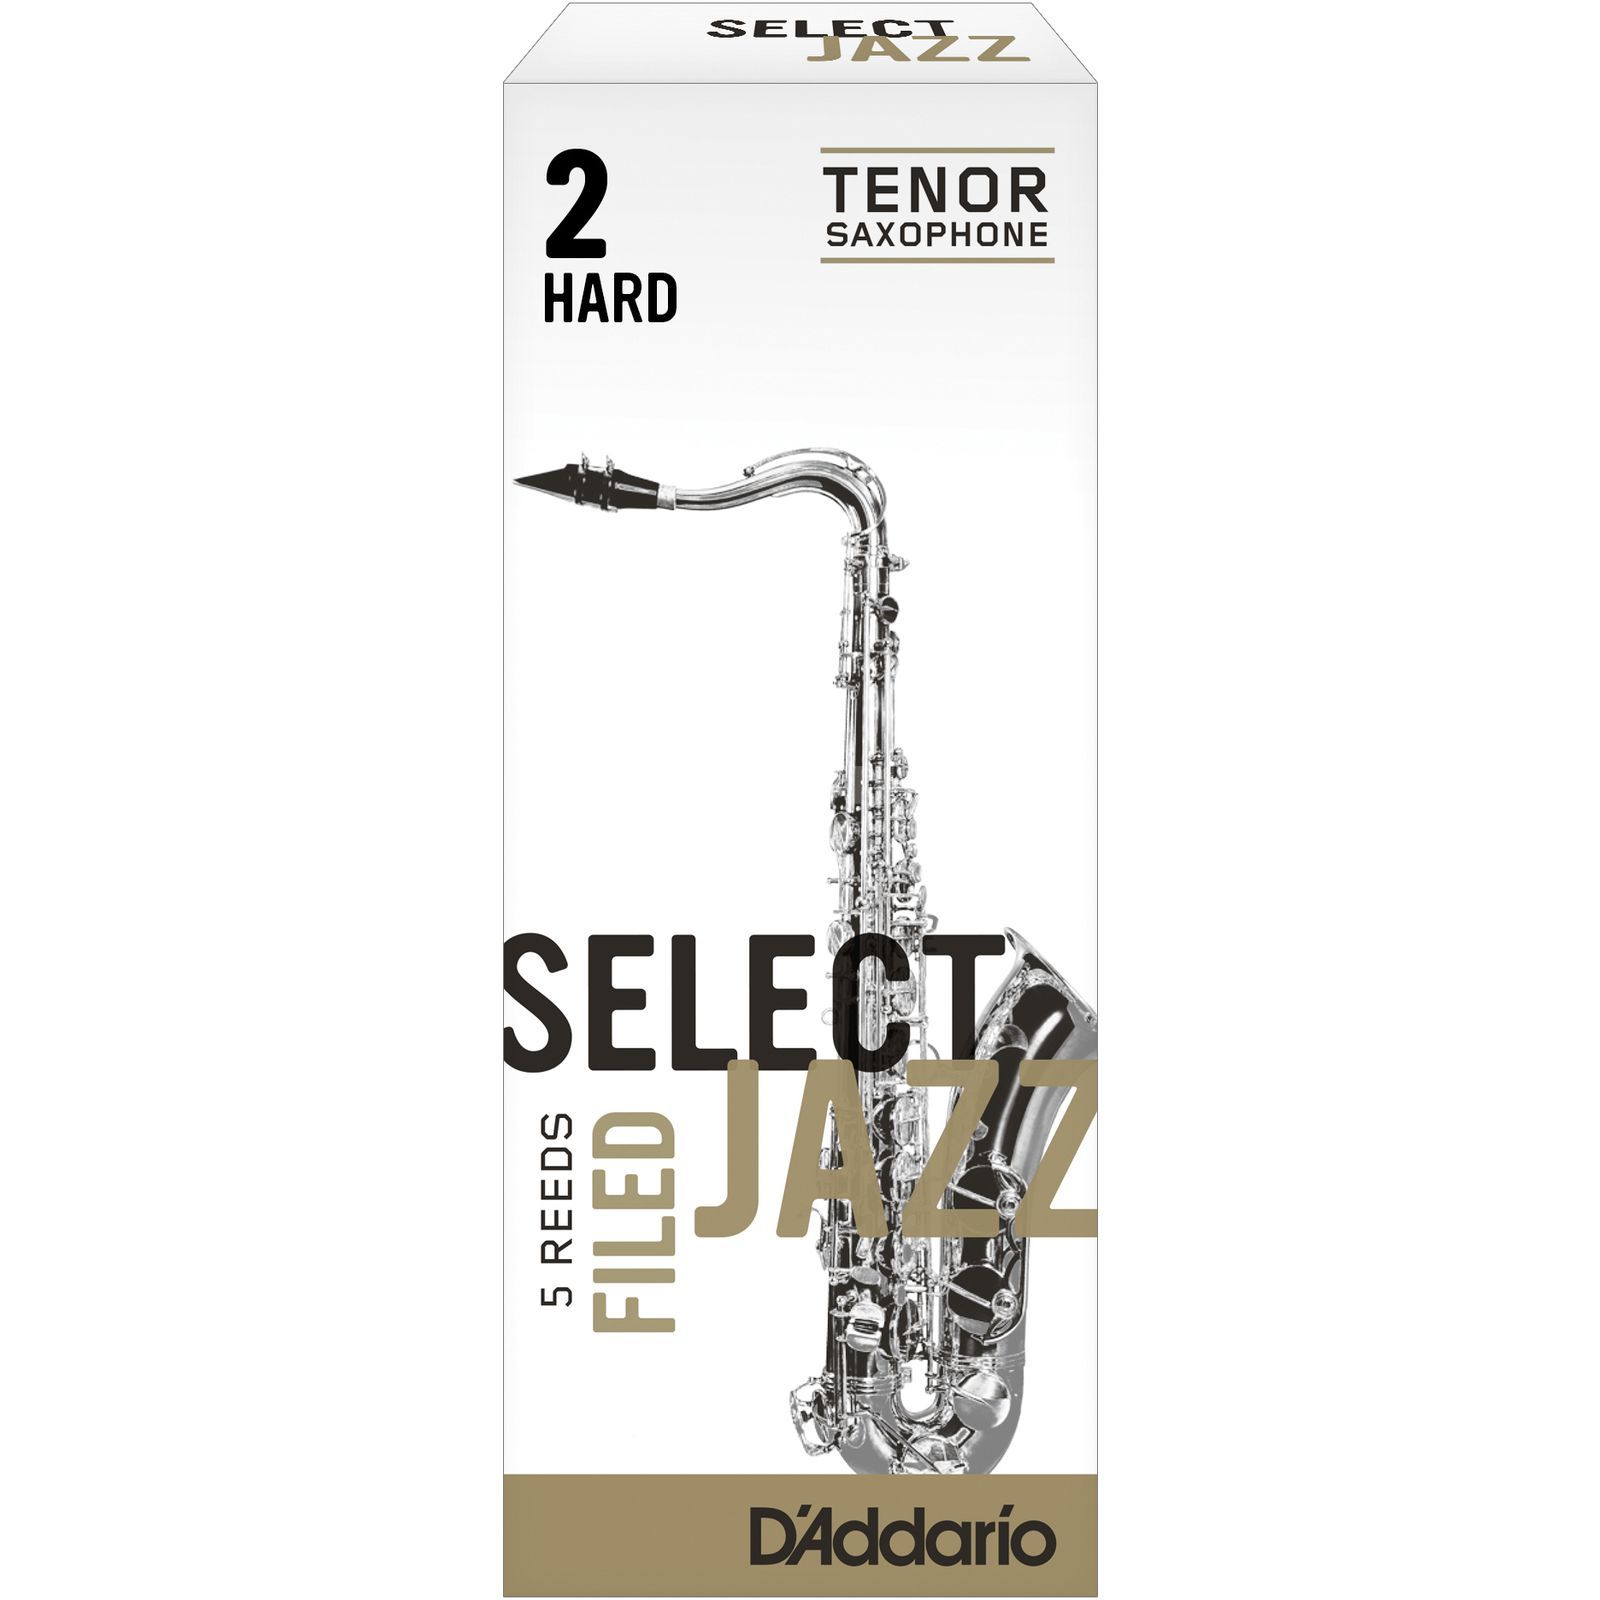 D'Addario Woodwinds Tenor Sax Reeds 2H Box of 5 Zdjęcie produktu